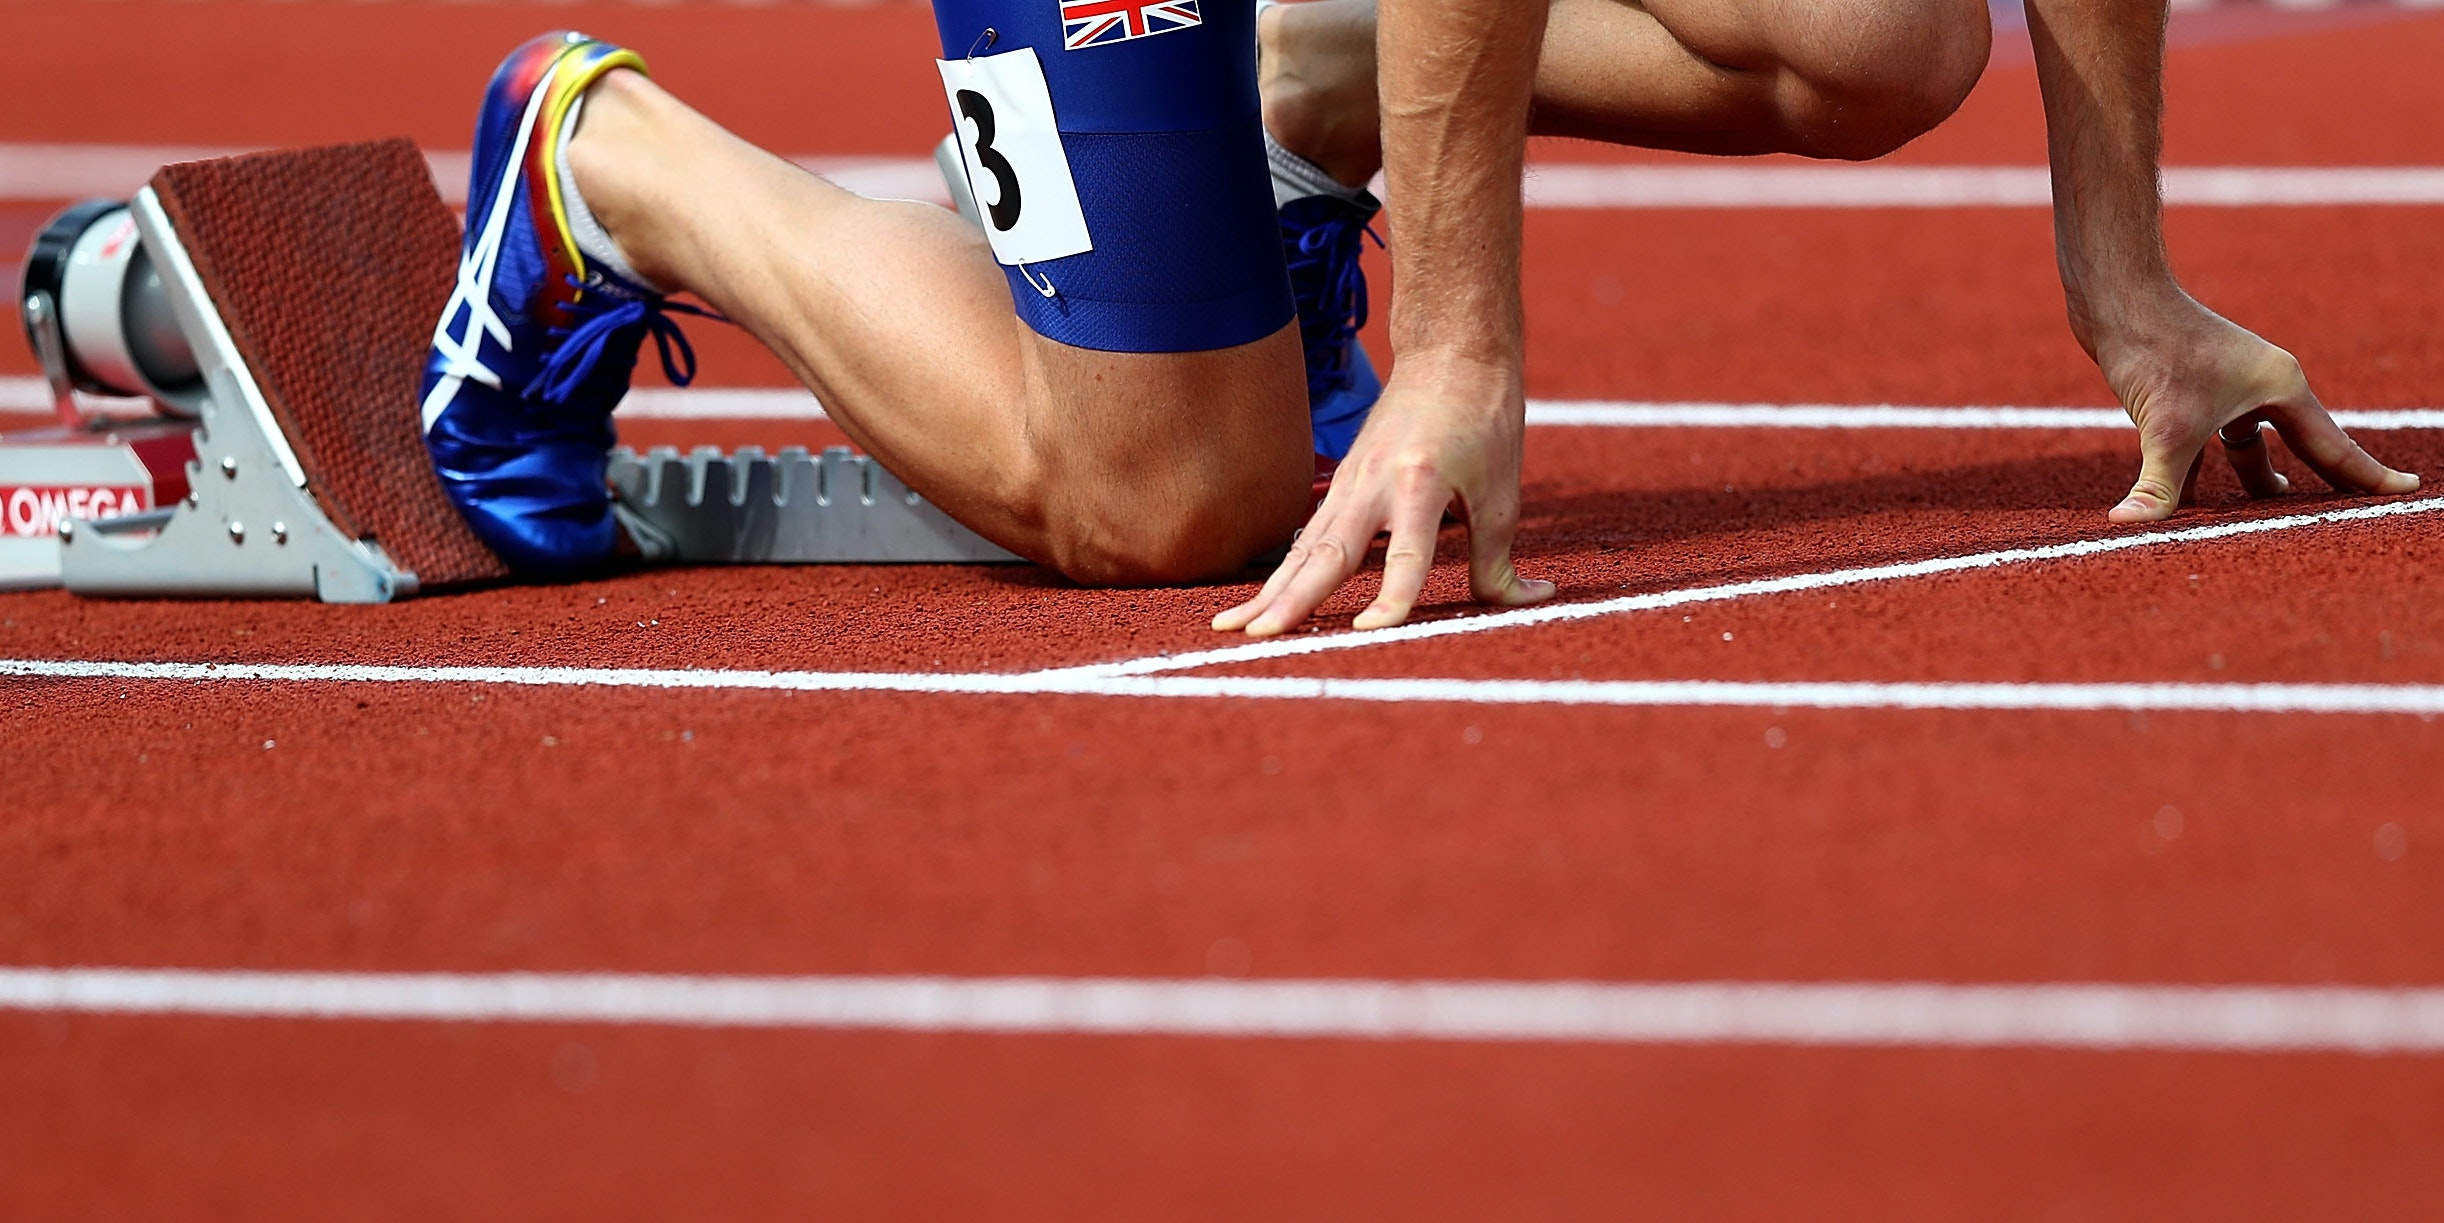 AMSTERDAM, NETHERLANDS - JULY 07:  Rhys Williams of Great Britain in the starting blocks ahead of his 400m hurdles semi final on day two of The 23rd European Athletics Championships at Olympic Stadium on July 7, 2016 in Amsterdam, Netherlands.  (Photo by Dean Mouhtaropoulos/Getty Images)